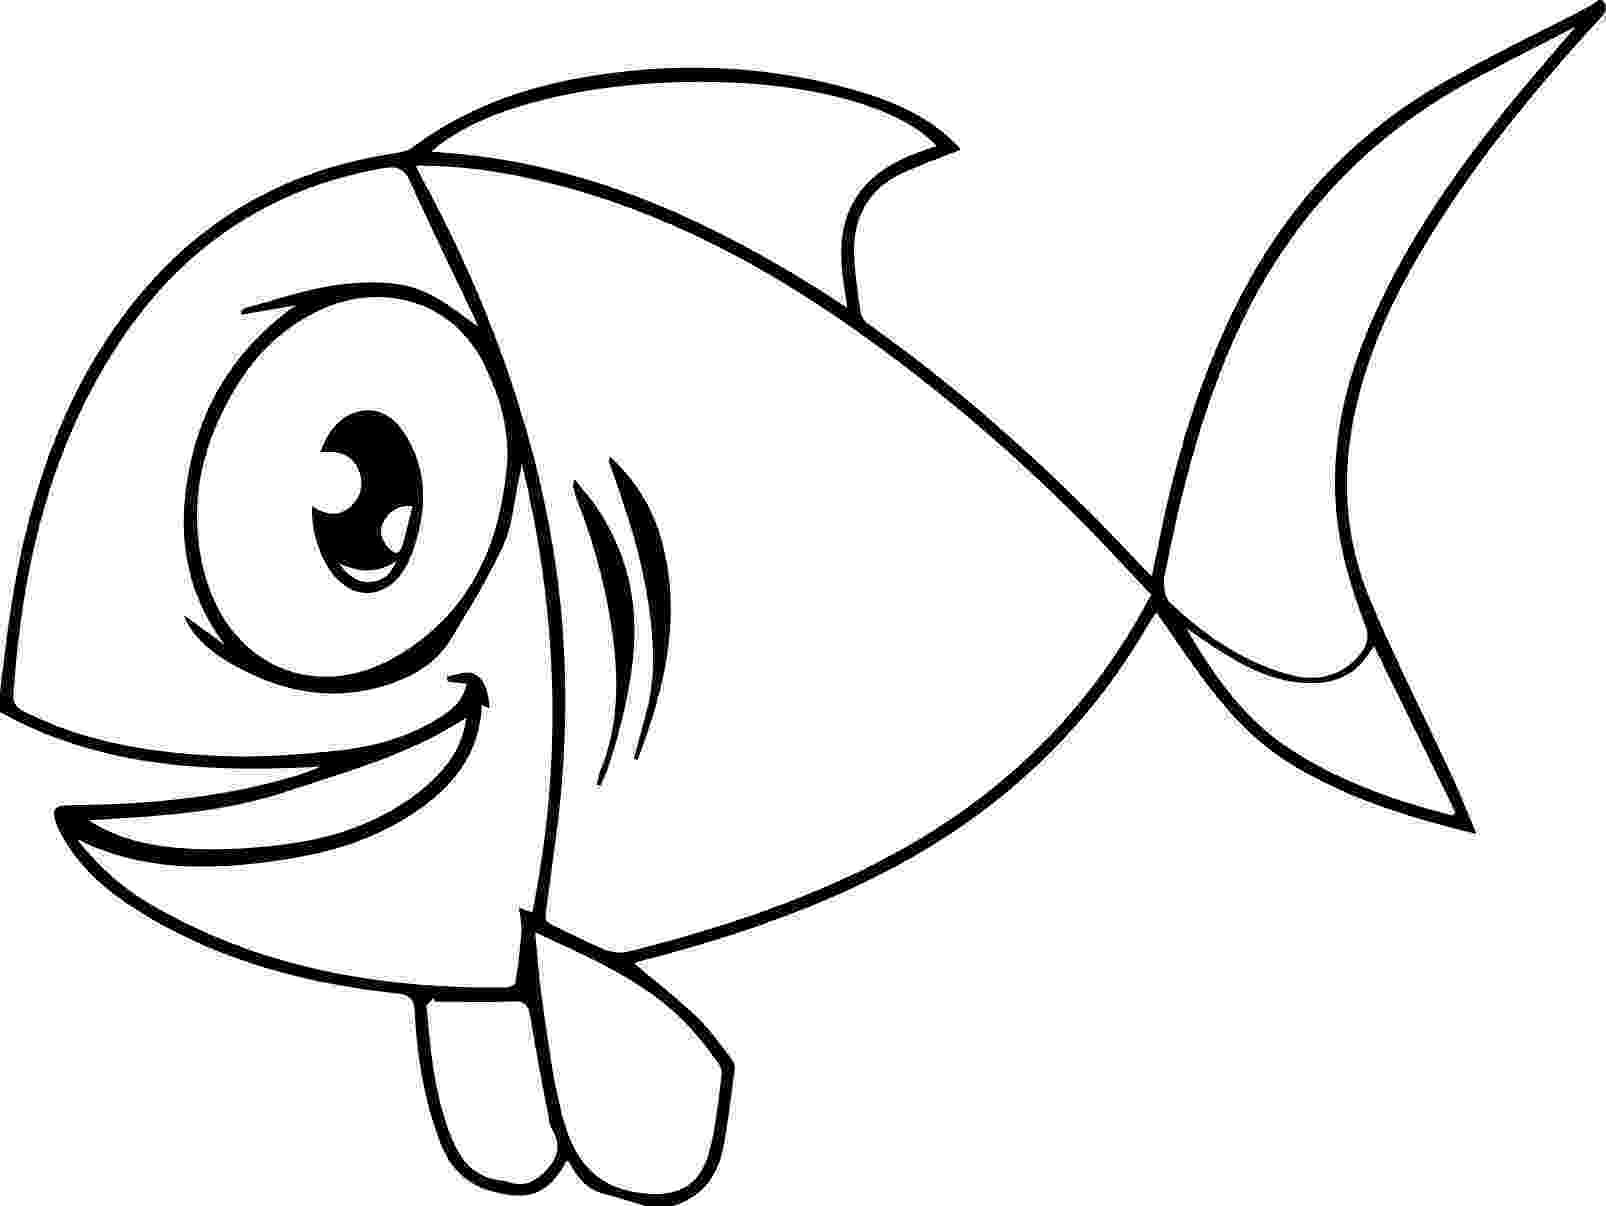 fish cartoon coloring pages cartoon angel fish coloring page coloring sky cartoon coloring fish pages